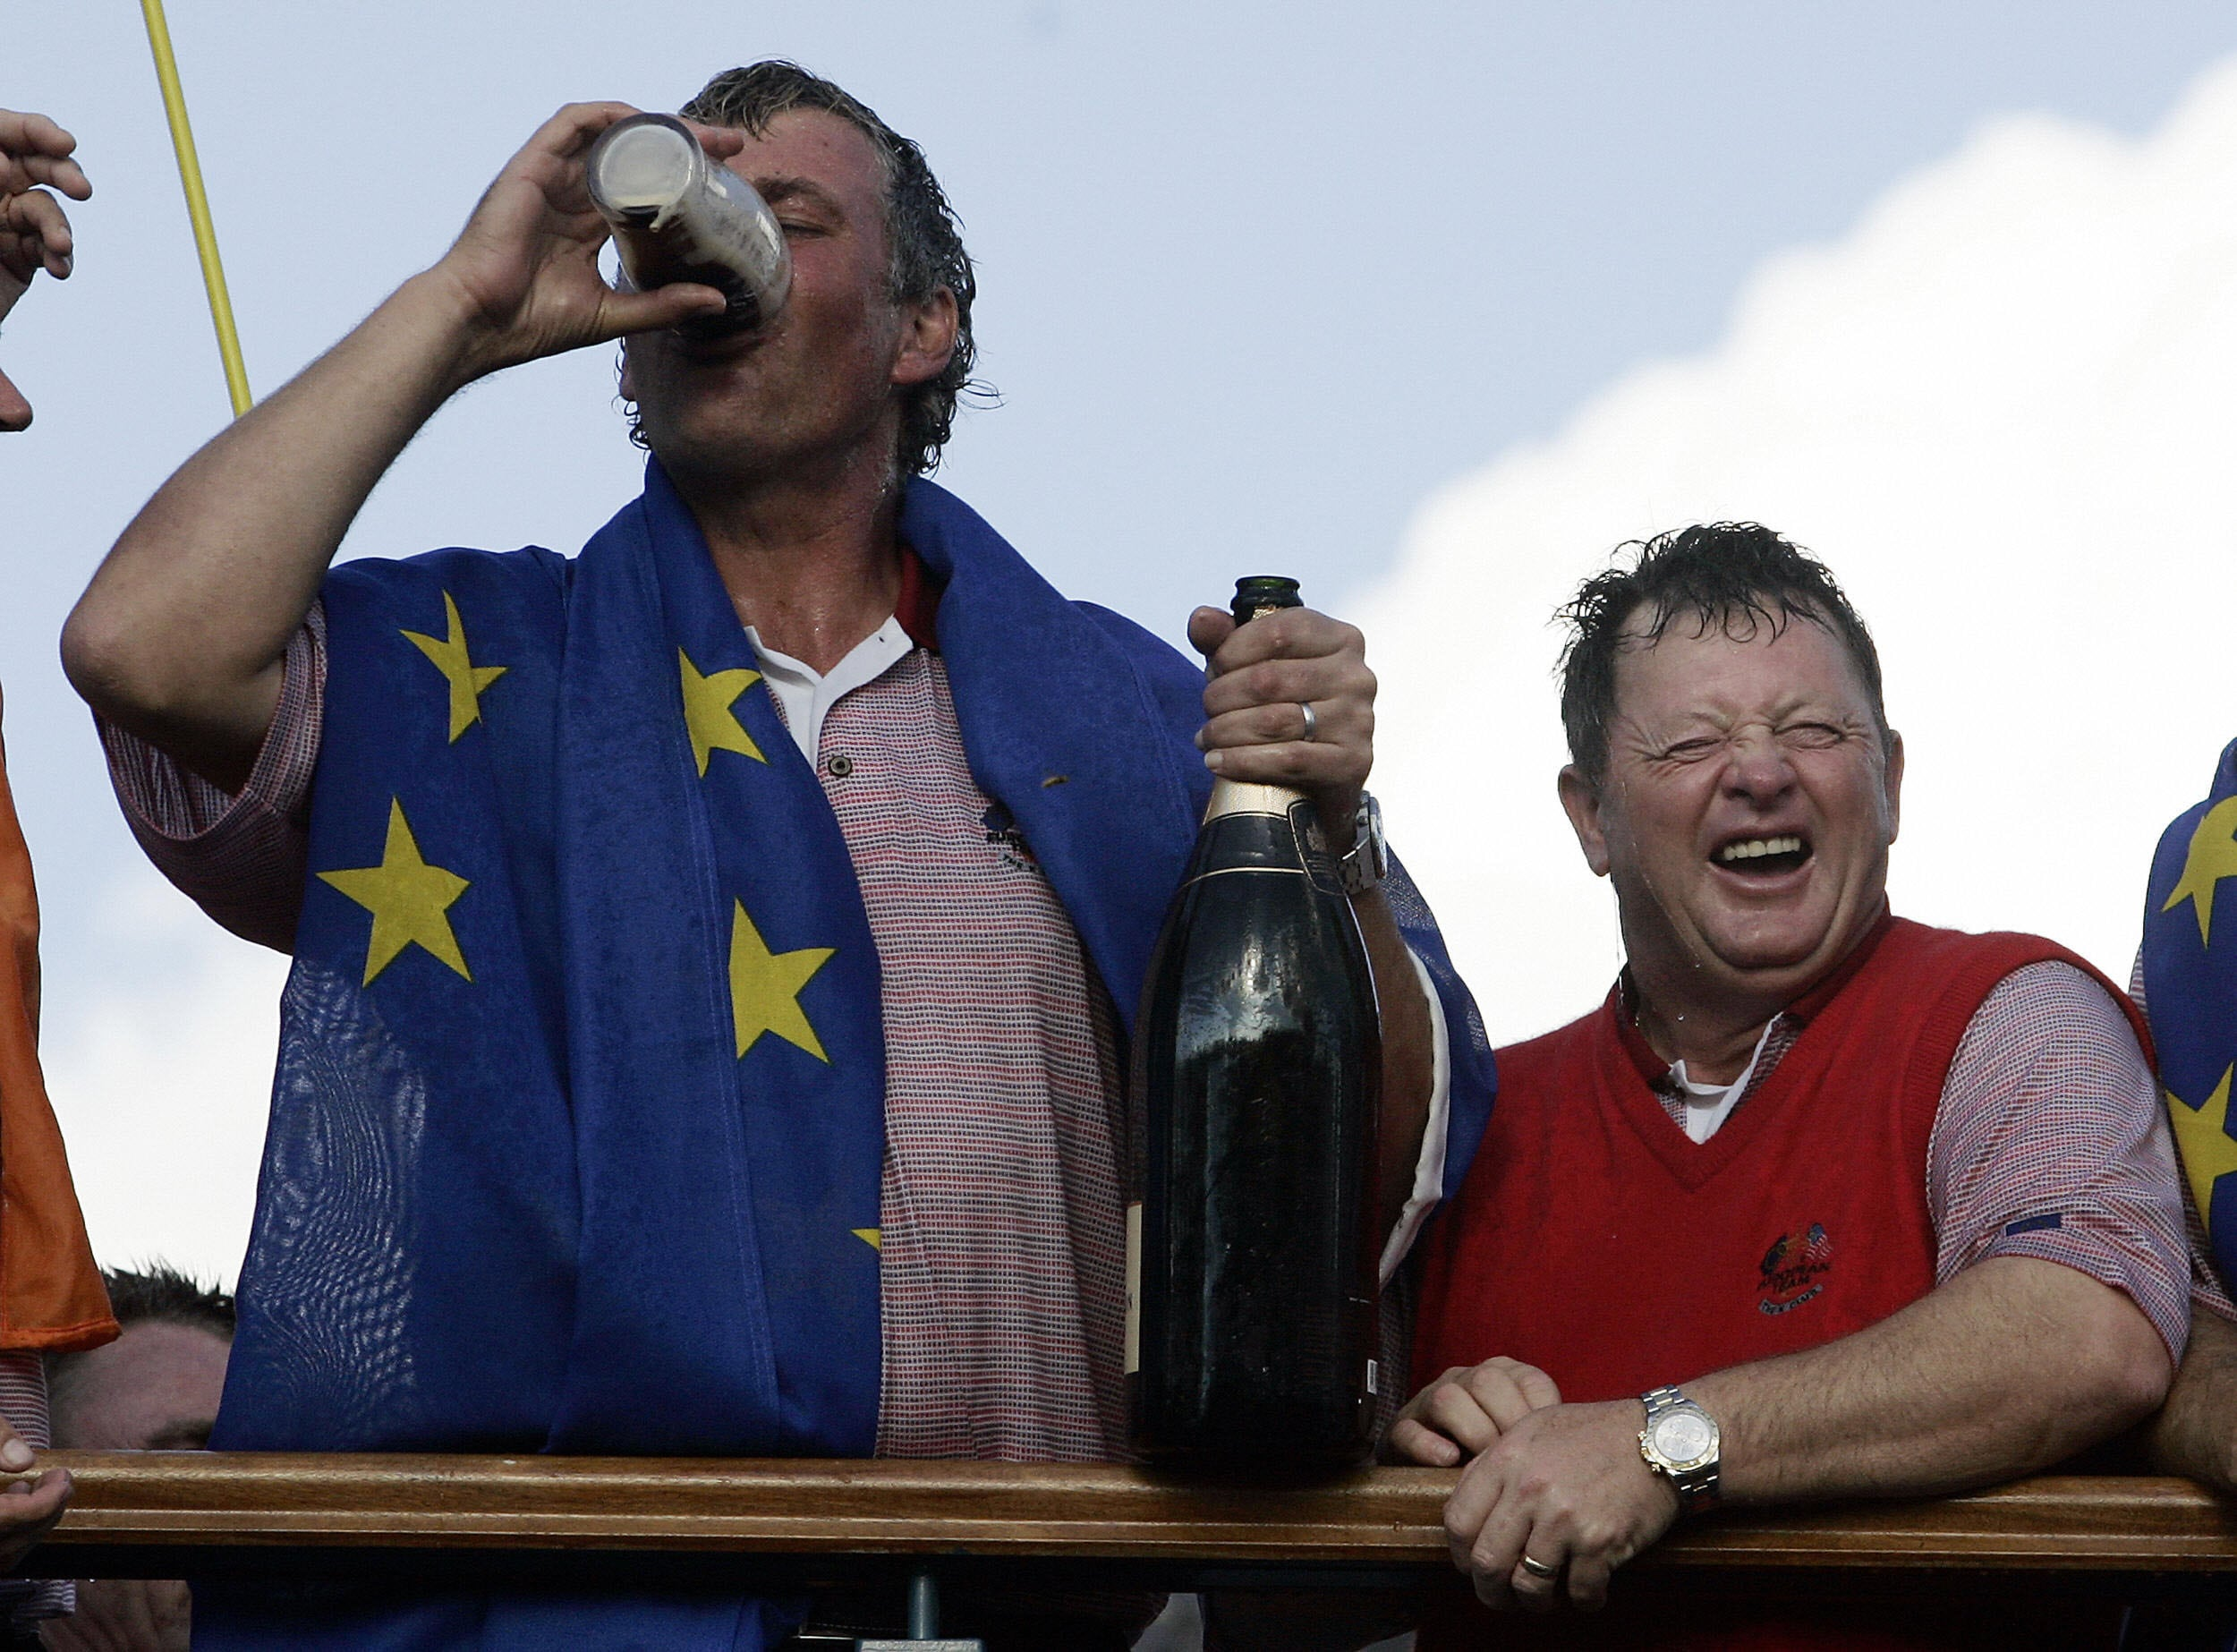 Darren Clarke with Ian Woosnam in the 2006 Ryder Cup